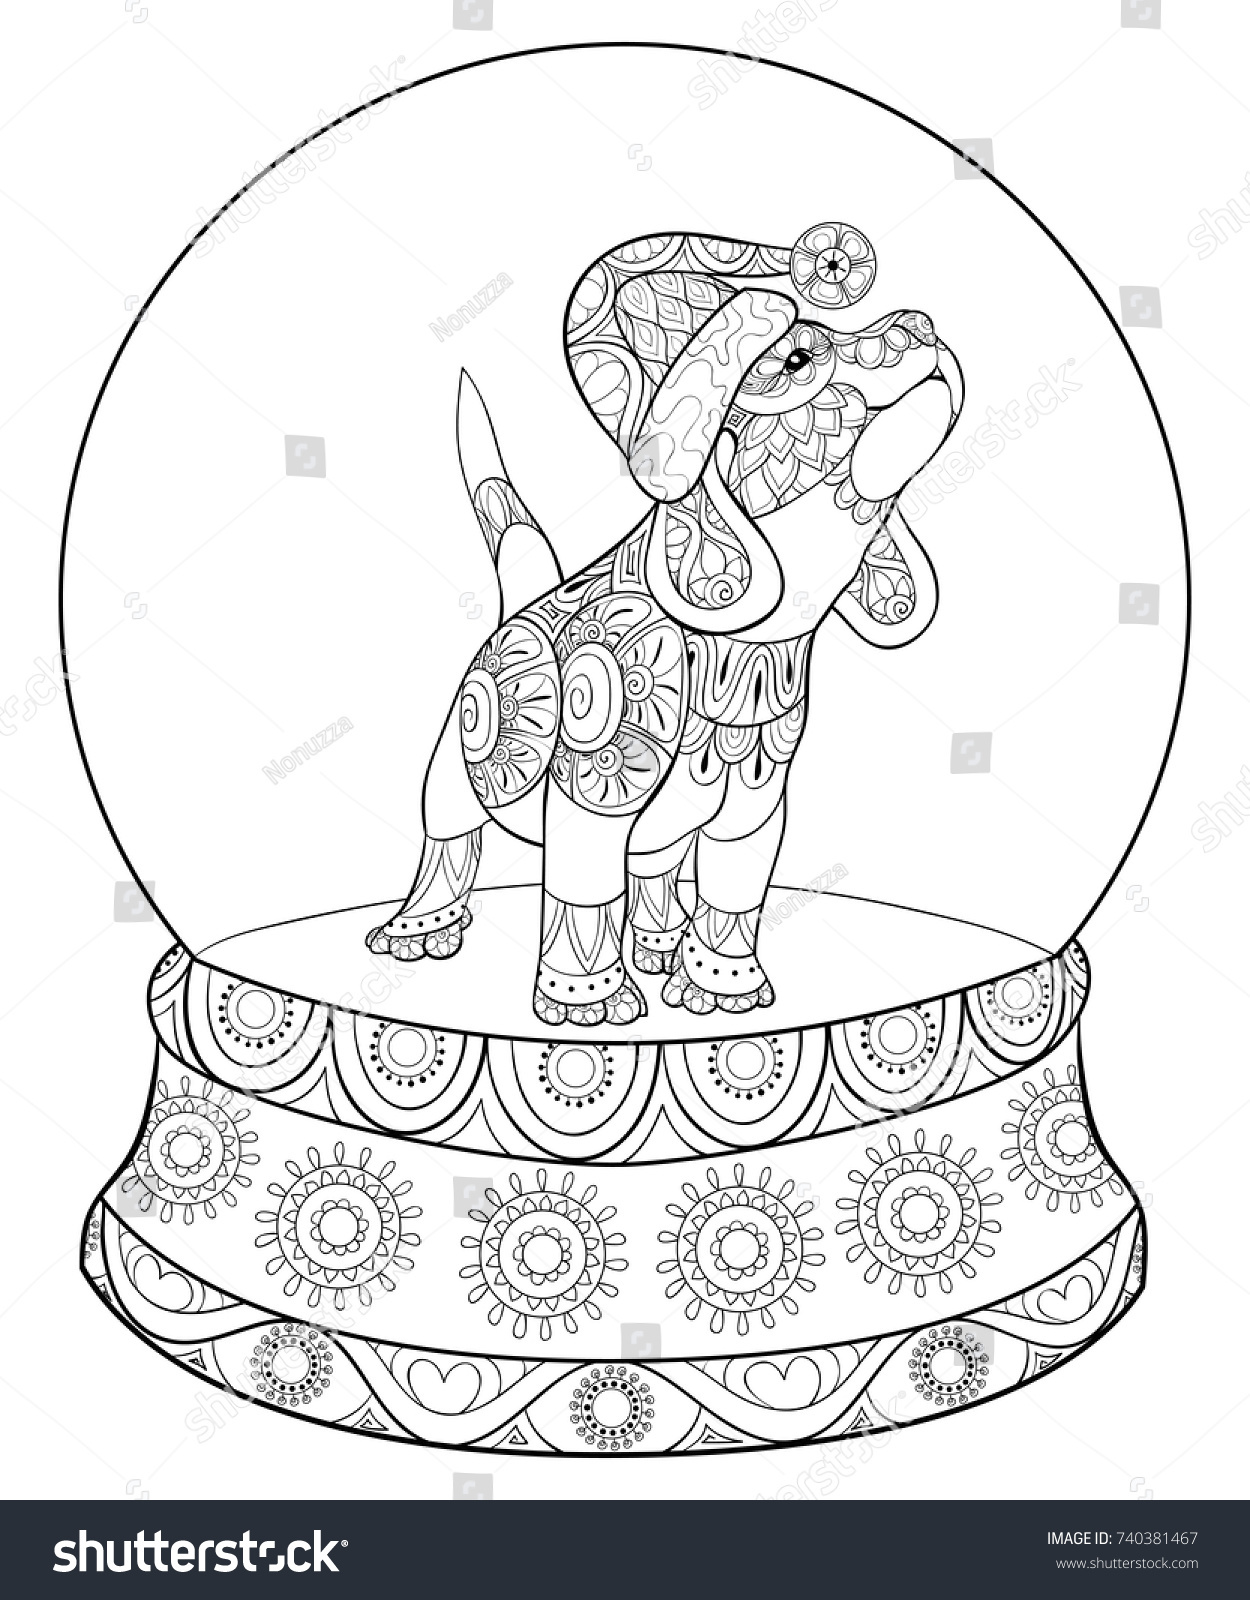 Adult Coloring Pagebook Cute Christmas Puppydog Stock Photo (Photo ...